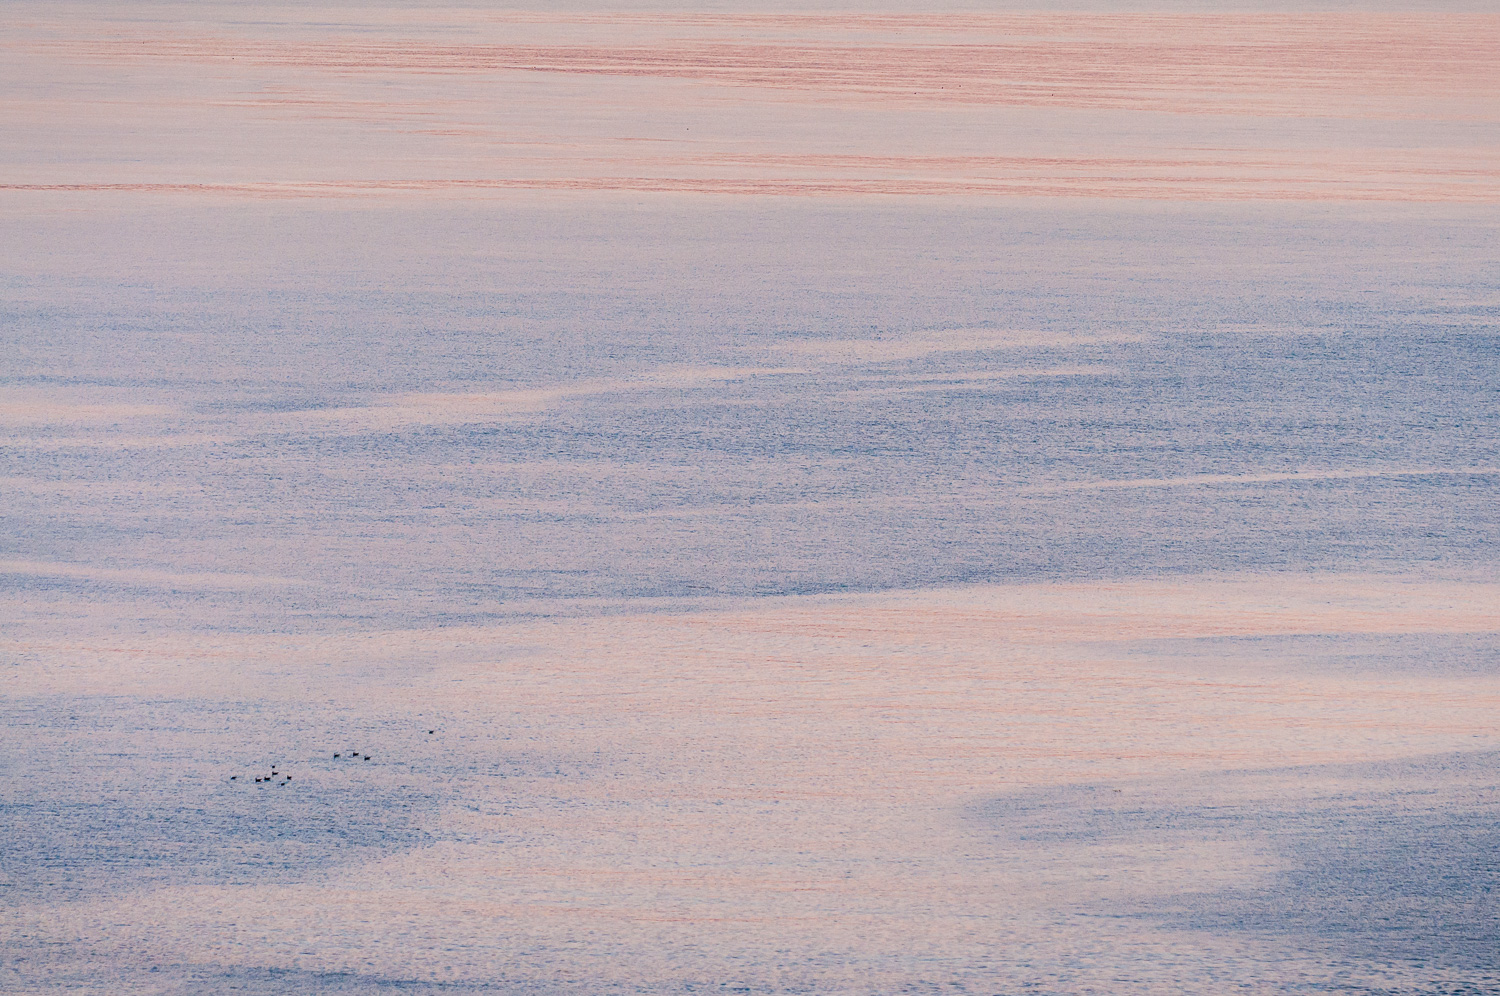 Sunset colours reflected in calm water - Island Bay in a peaceful moment.  Even the seabirds were still.